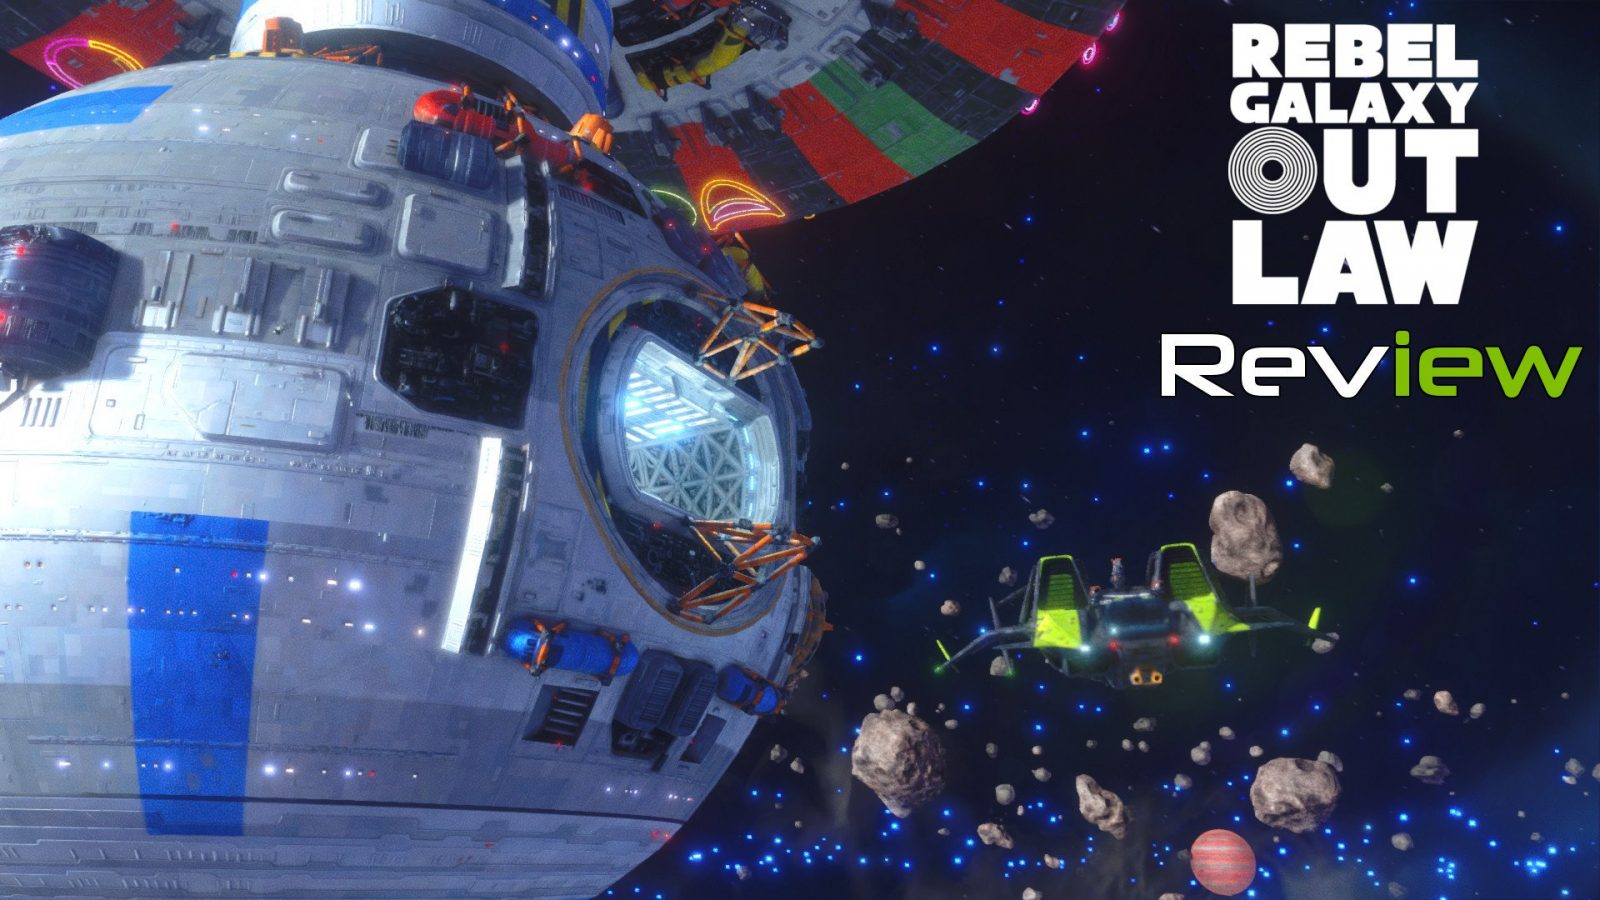 Rebel Galaxy Outlaw Review – Those Evil Ways